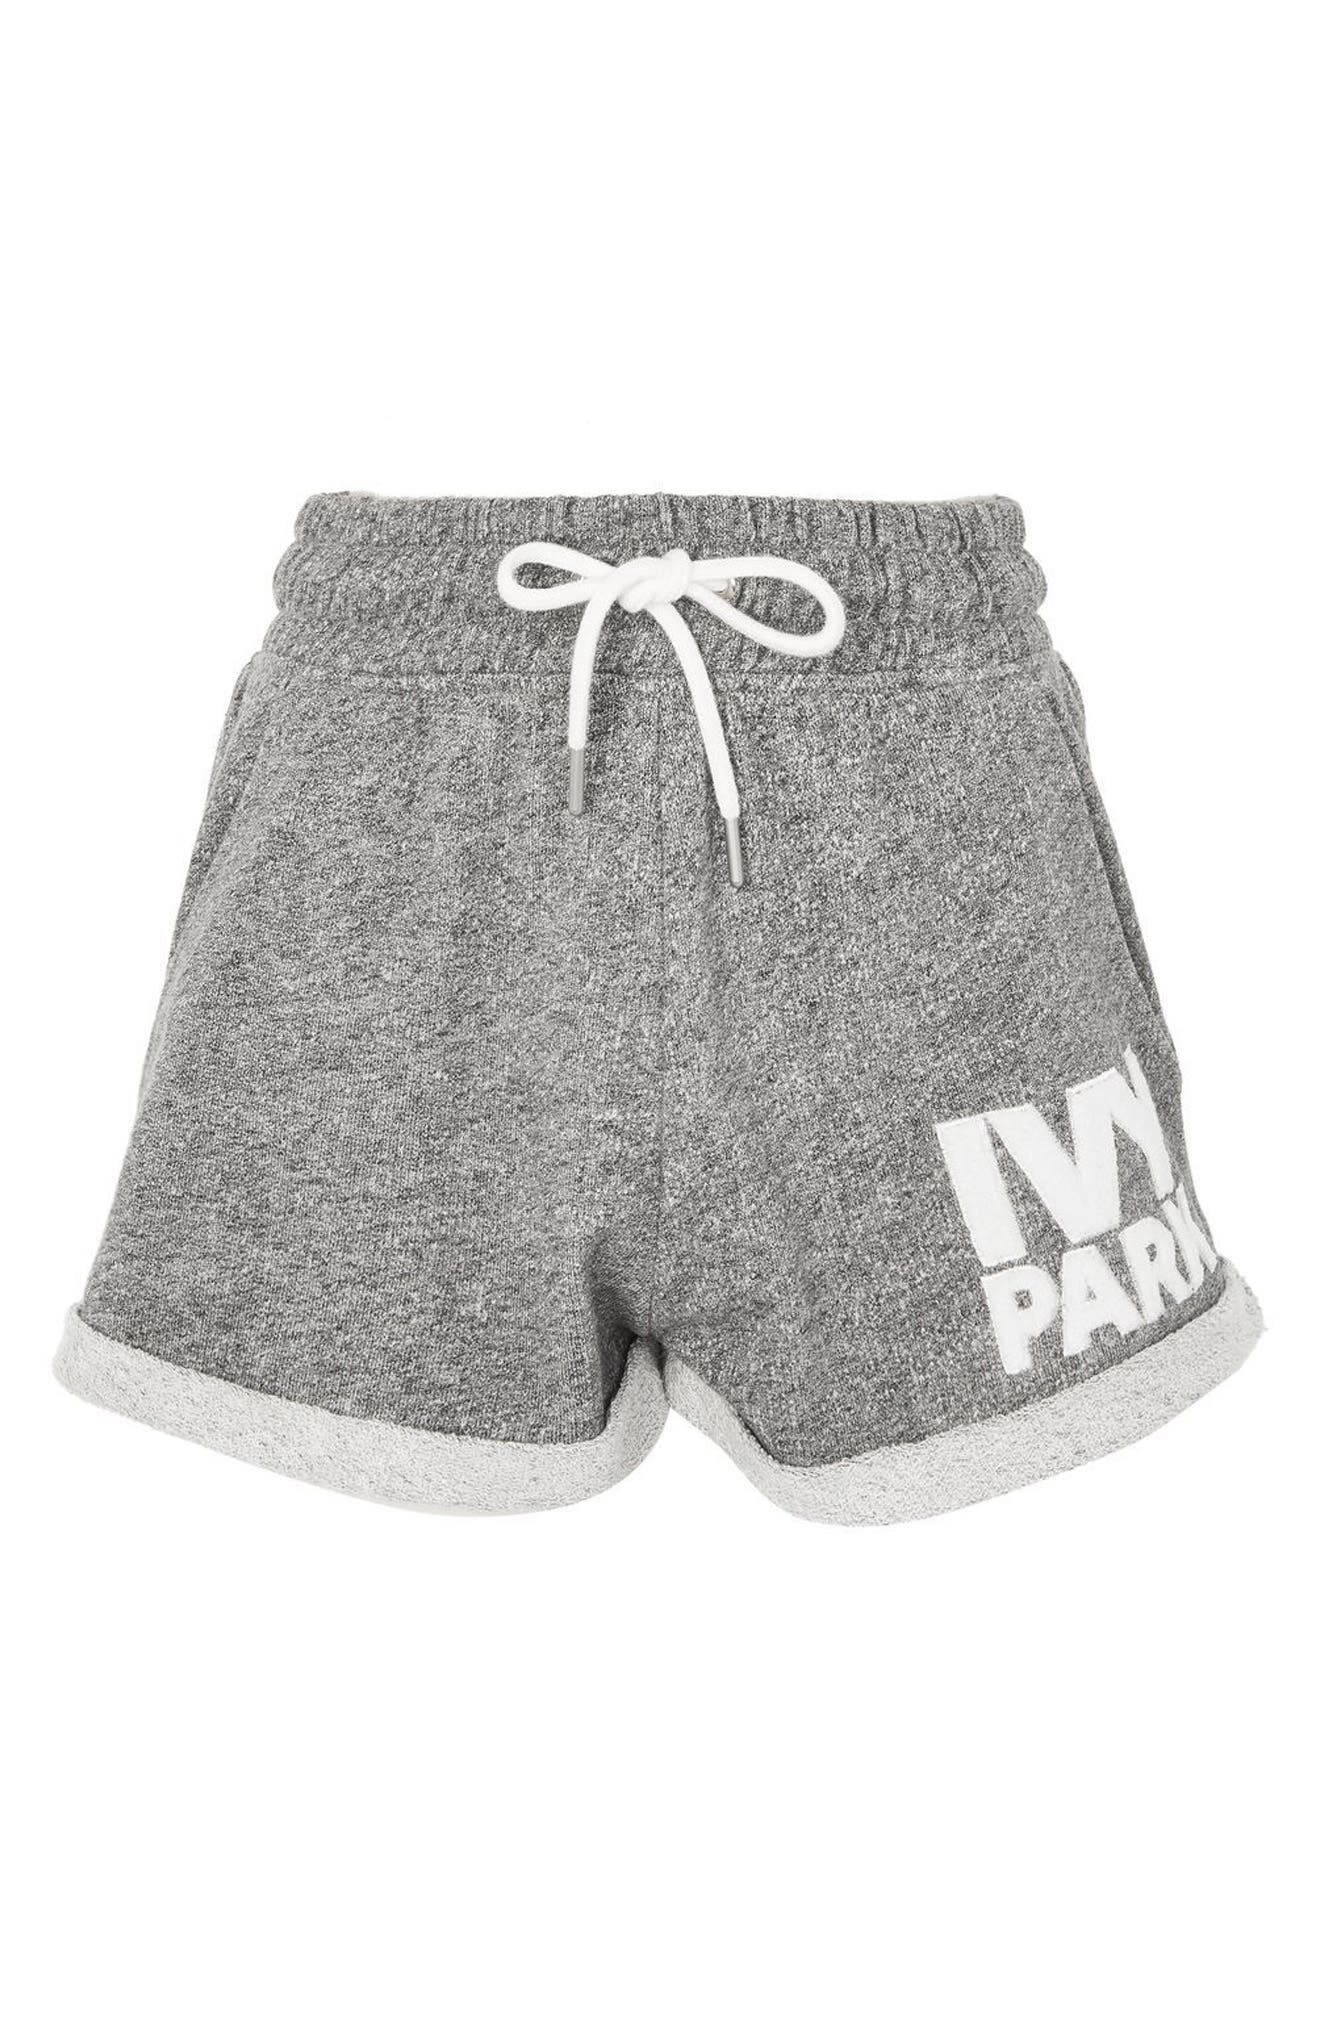 Alternate Image 1 Selected - IVY PARK® Chenille Logo Shorts